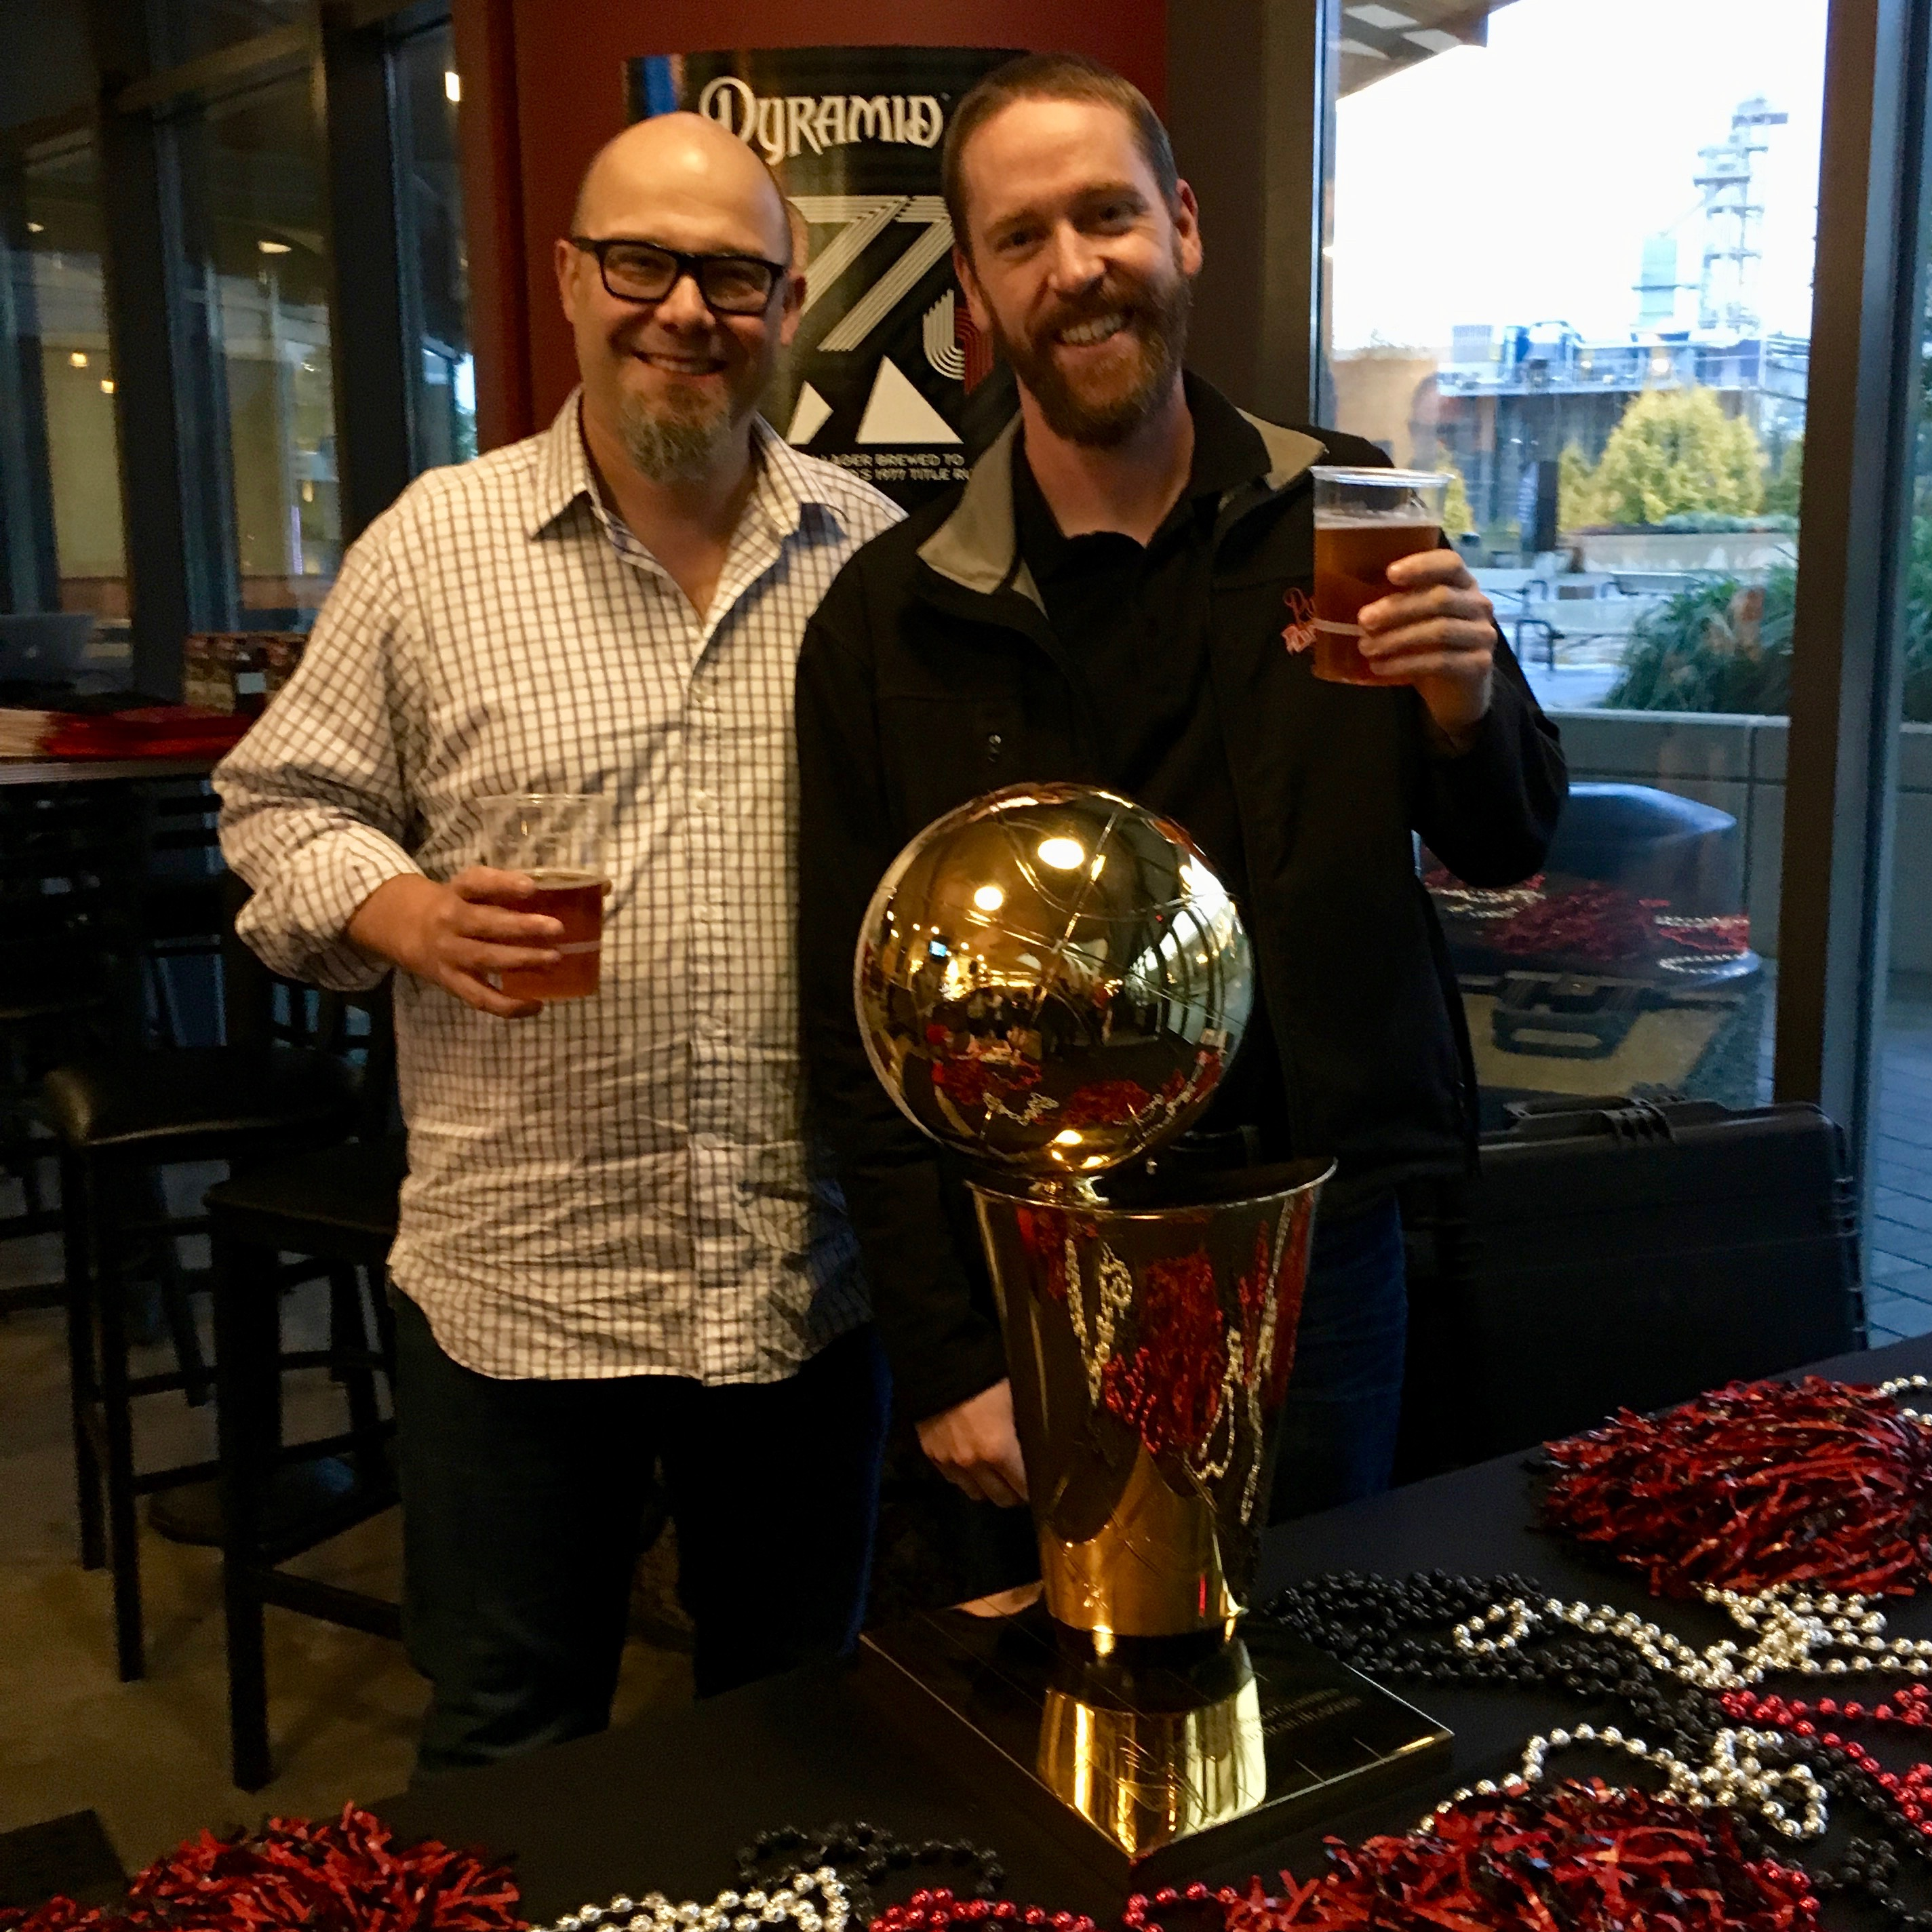 Robert Rentsch and Ryan Pappe of Pyramid Brewing posing in front of the 1977 Portland Trail Blazer NBA Championship Trophy.